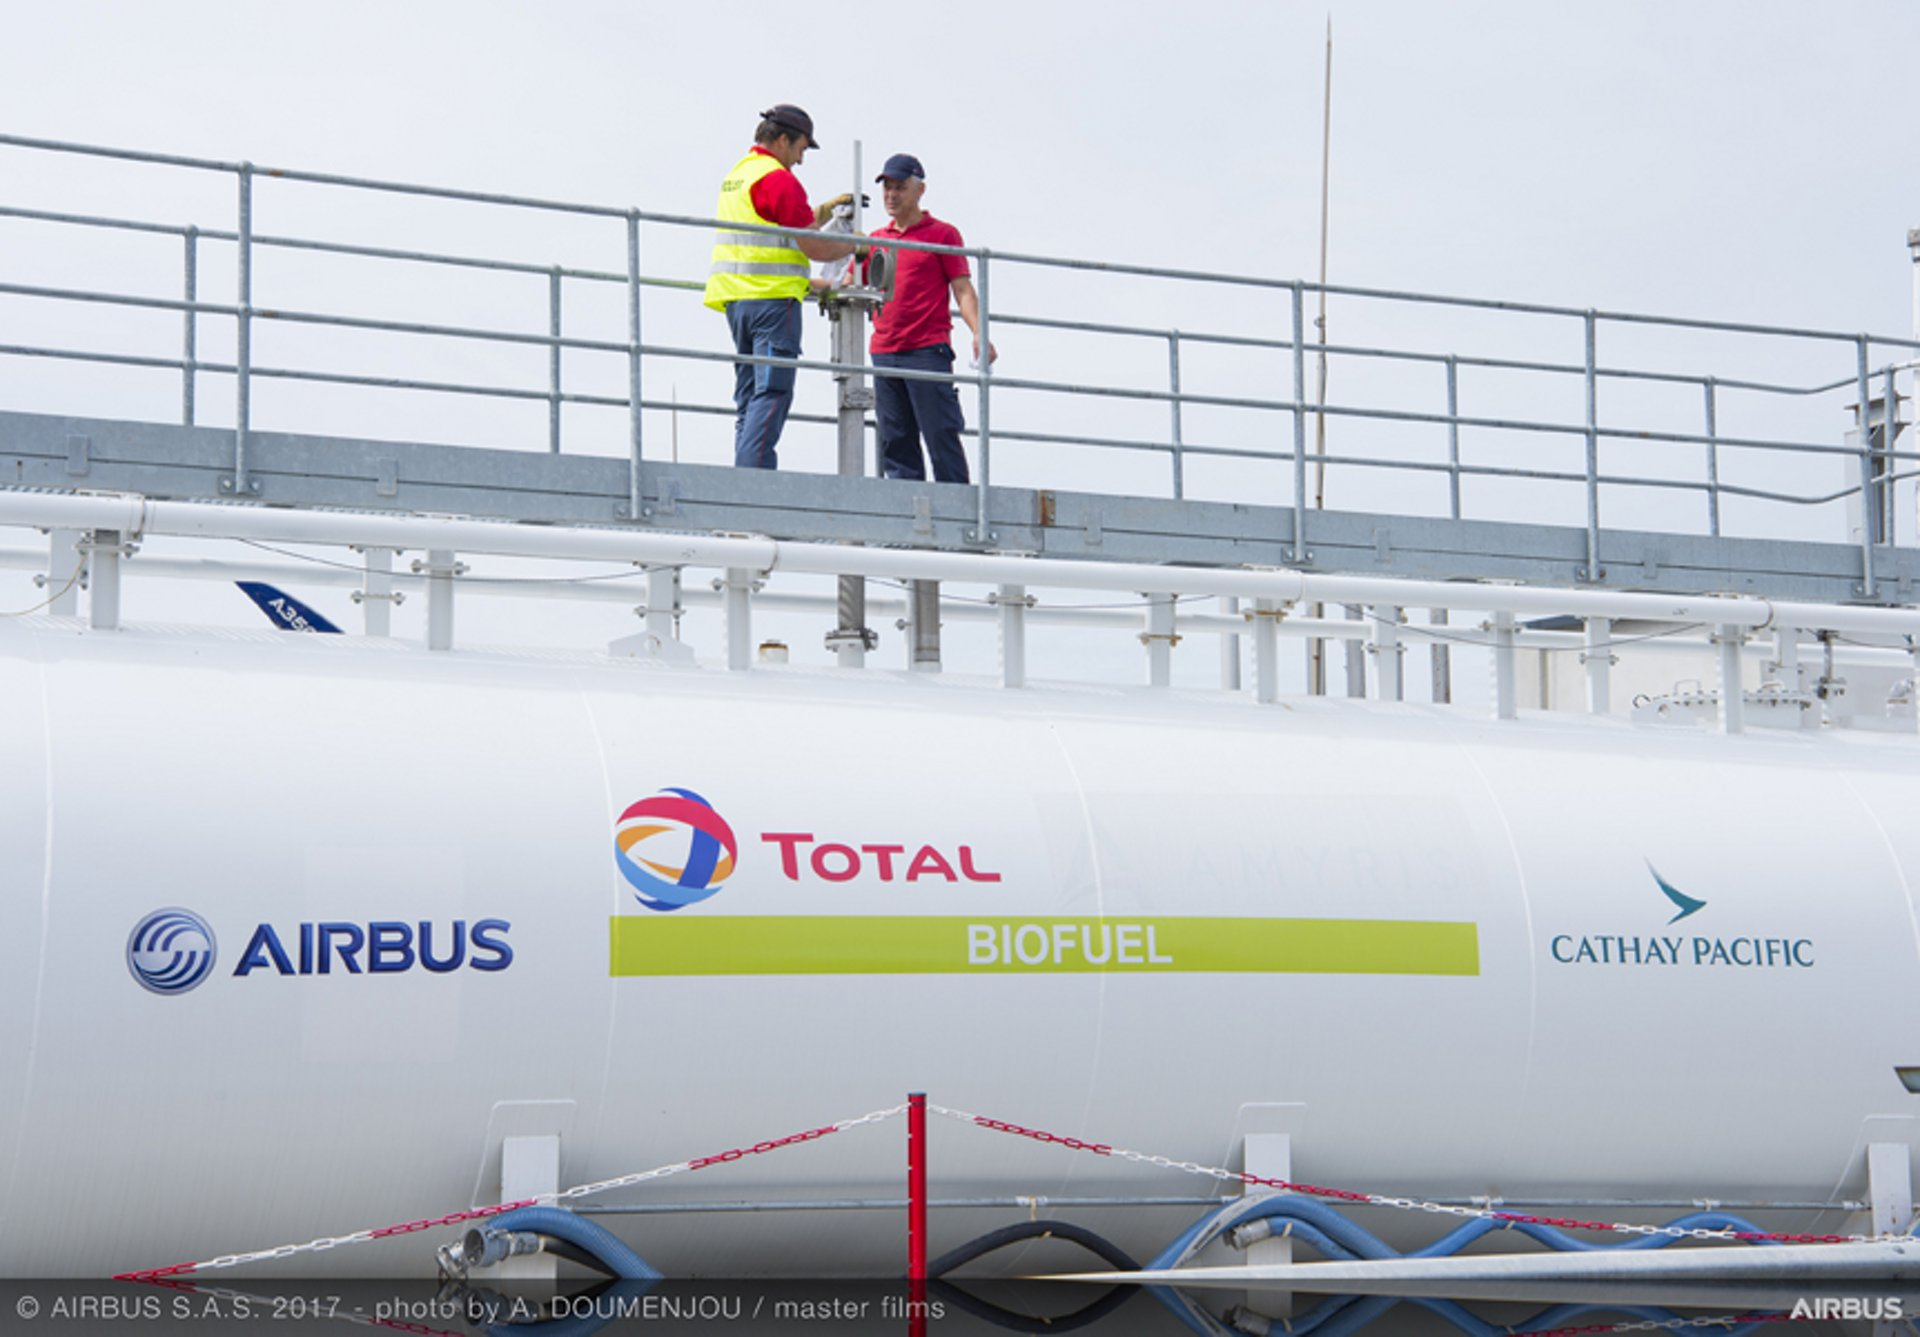 Airbus, Cathay Pacific  and Total are partners since 2016 to deliver the Cathay Pacific A350 with a blend of sustainable fuel.